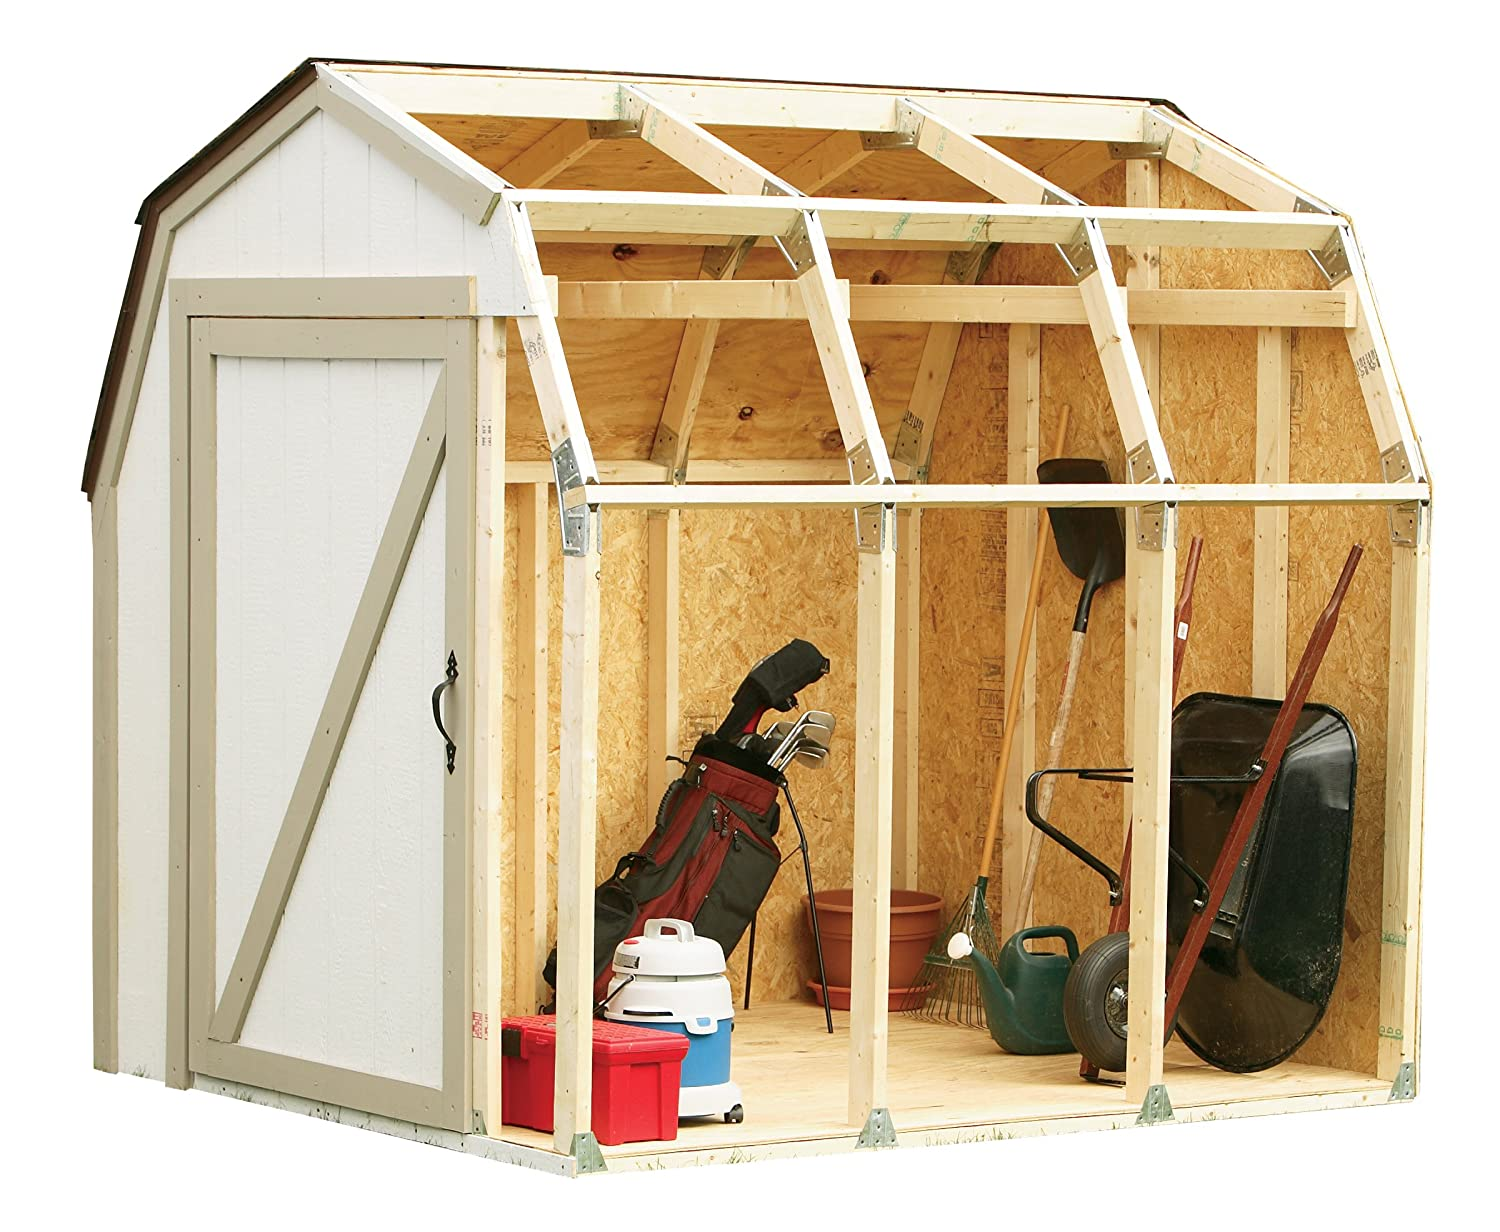 Hopkins 90190 2x4basics Shed Kit, Barn Style Roof Blitz USA